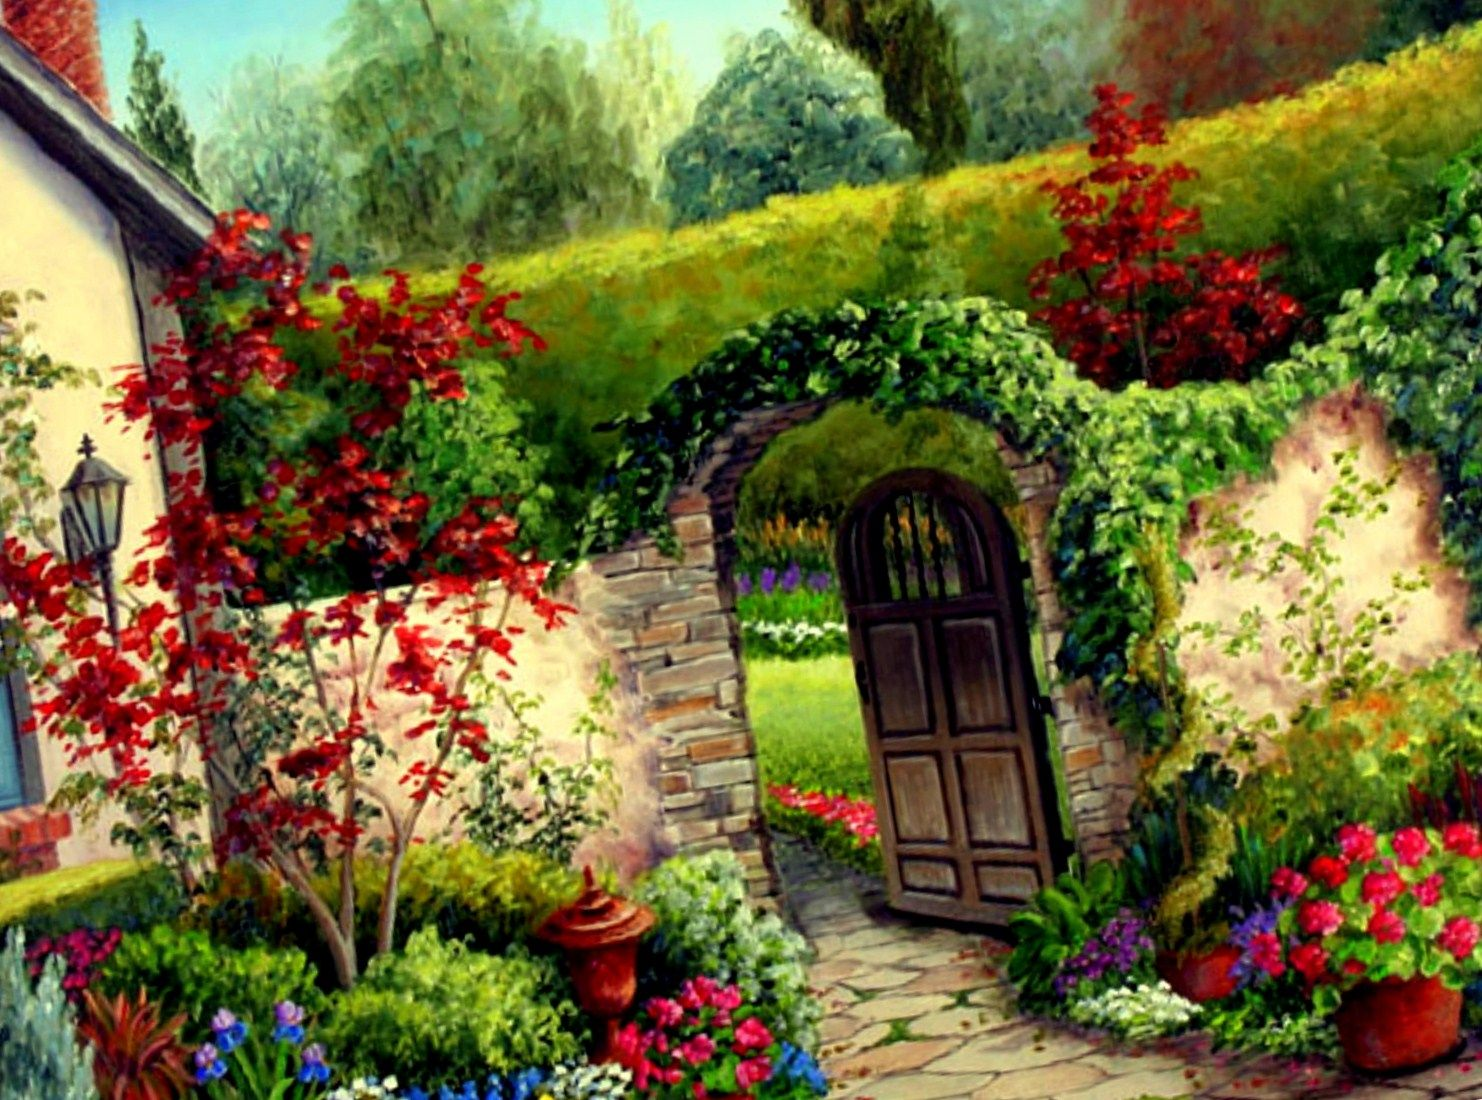 Flower Garden Landscape Click Image For More Details This Is